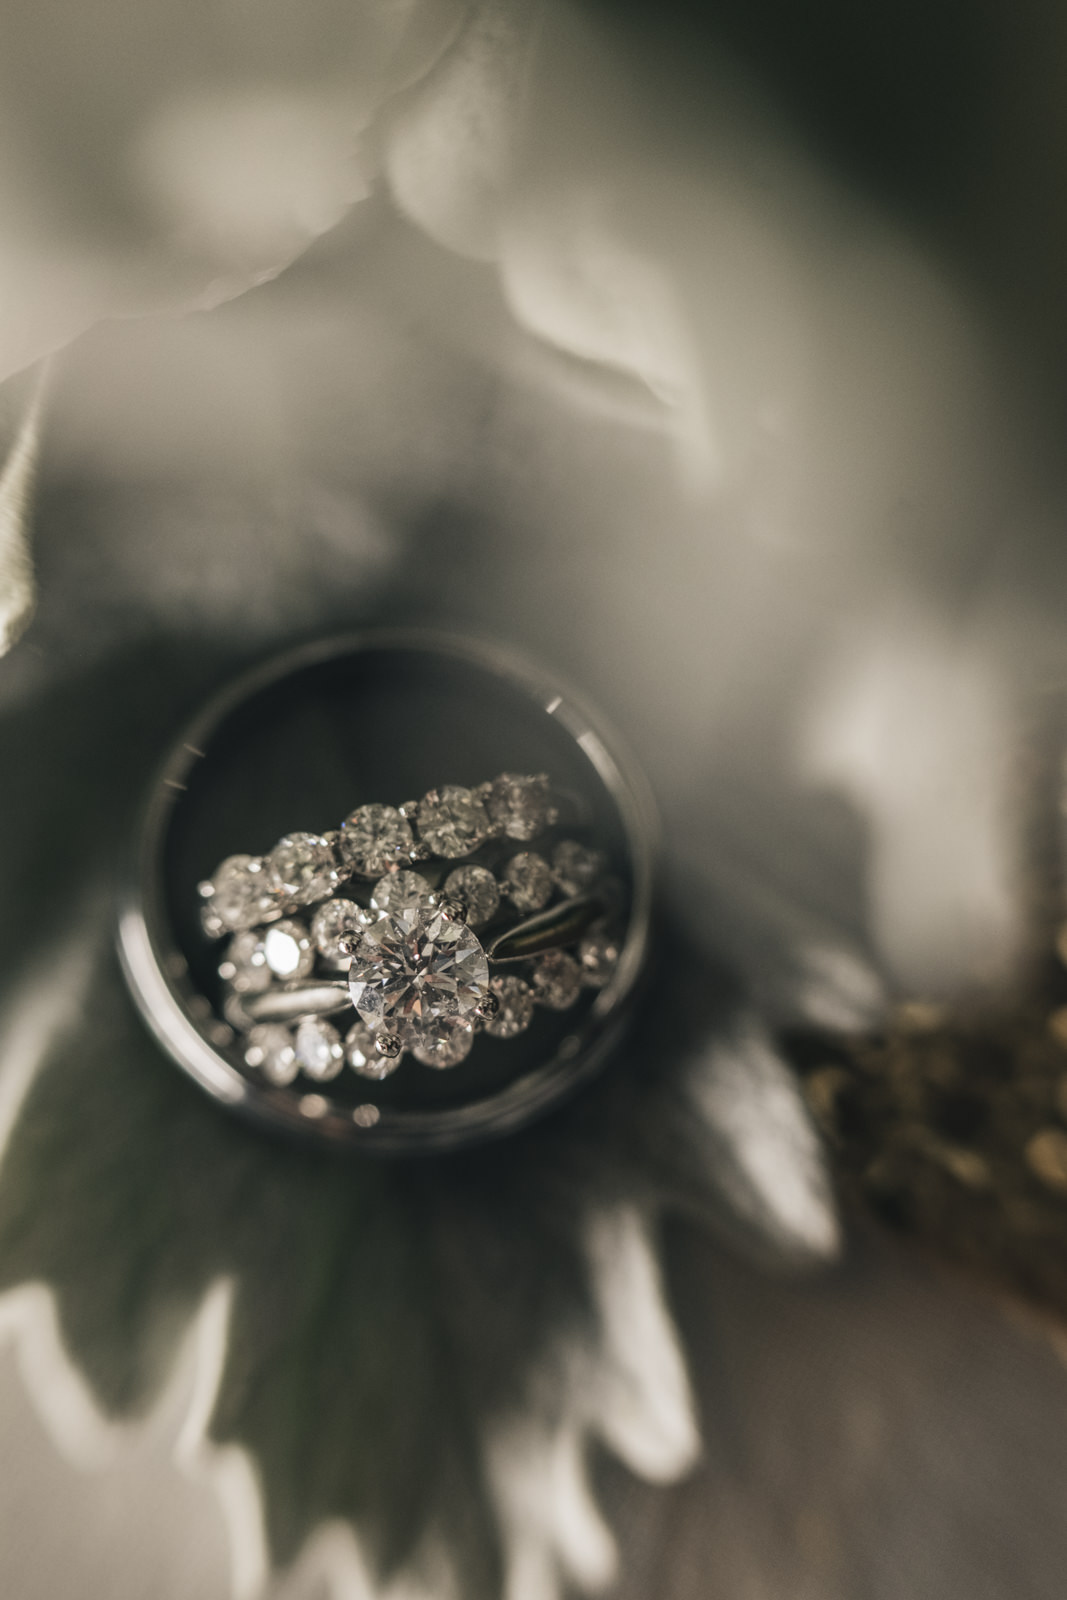 Picture of the wedding ring sitting in flowers at a Toledo wedding.